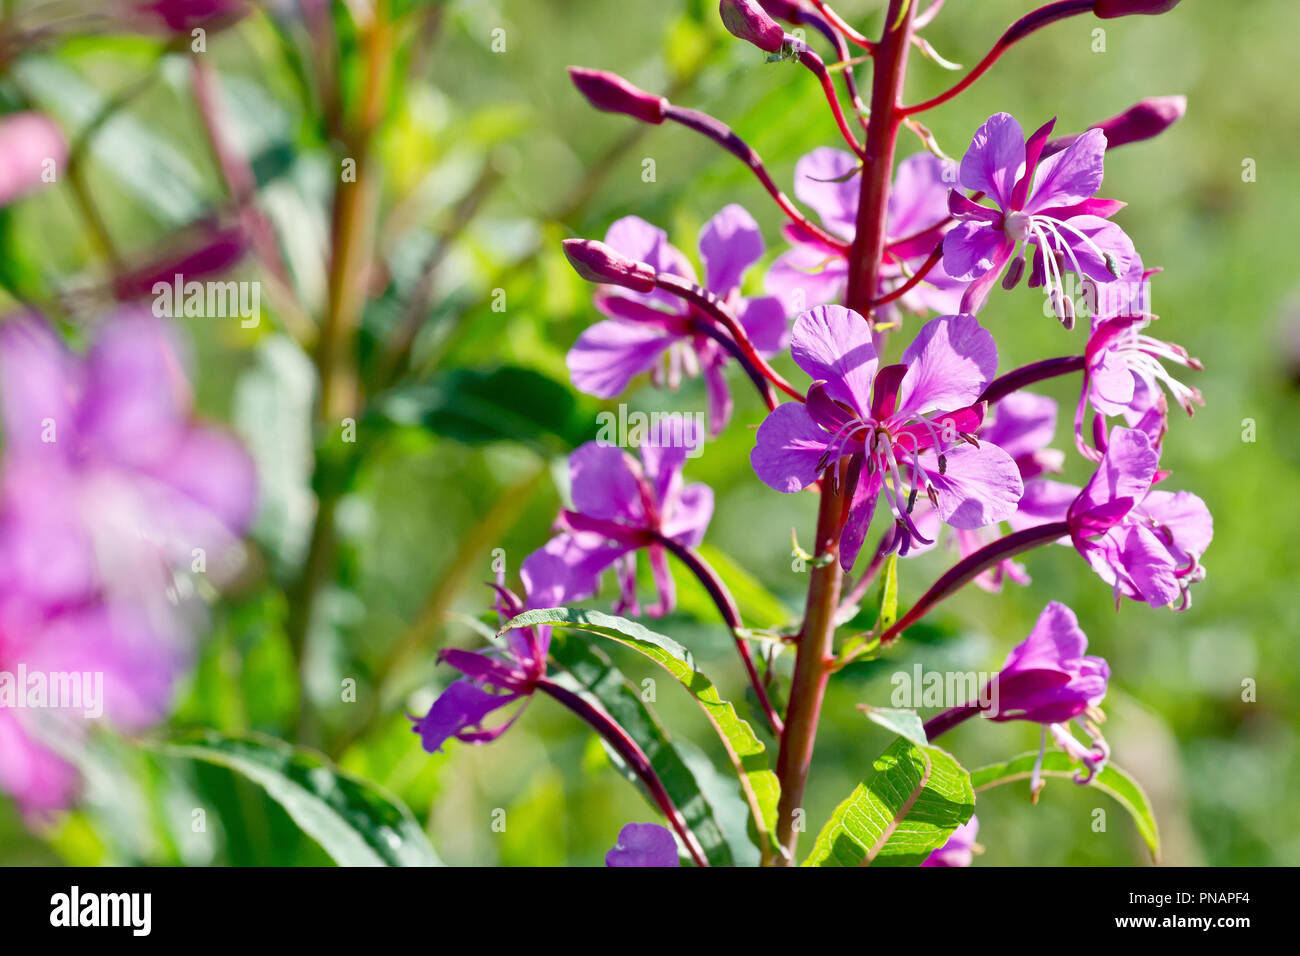 Rosebay Willowherb (epilobium angustifolium or chamerion angustifolium), close up of a group of backlit flowers and buds. Stock Photo